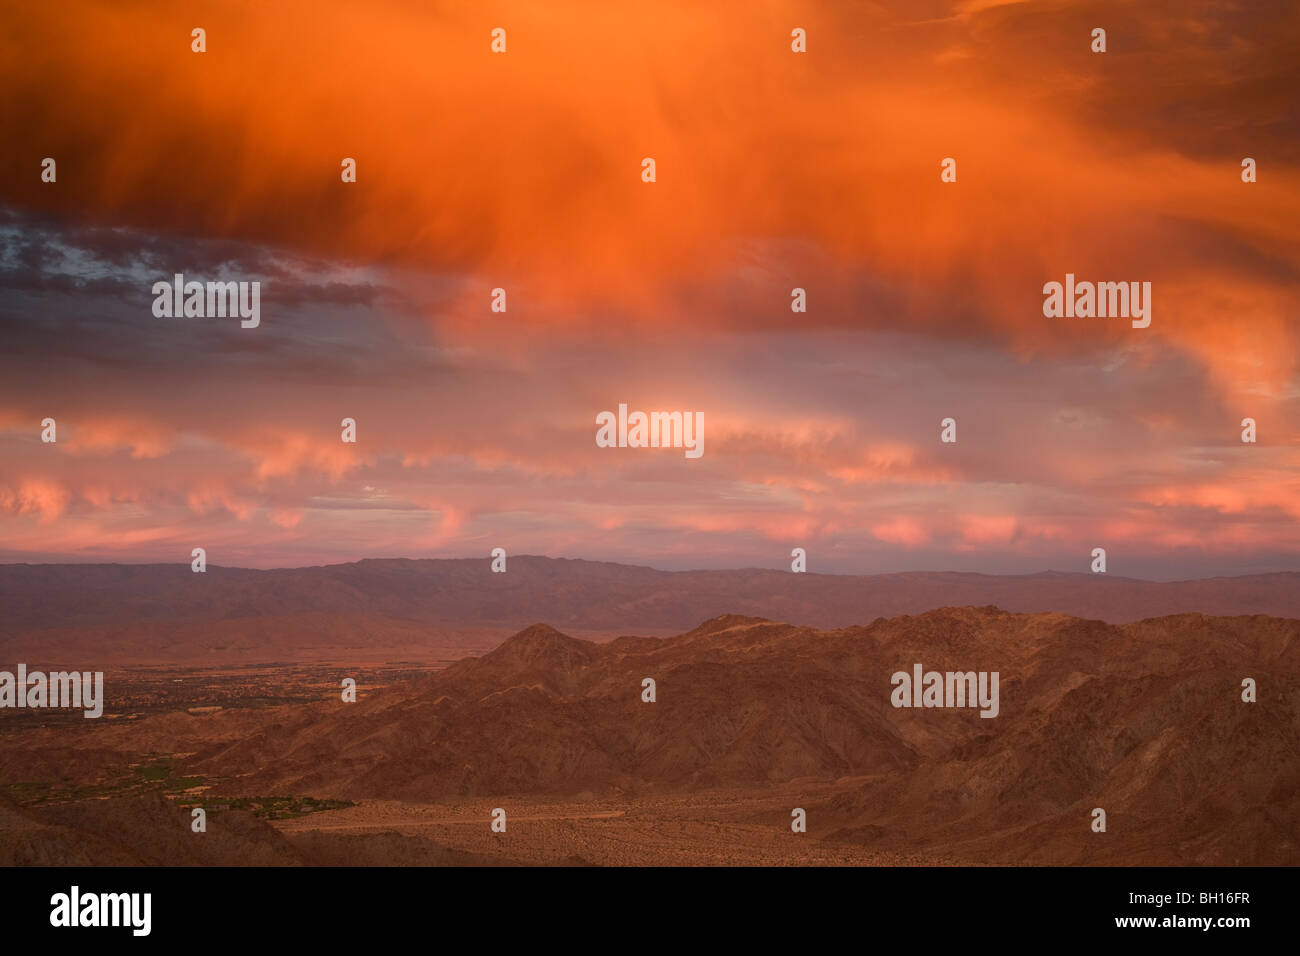 Sunset over Palm Desert and Rancho Mirage in the Coachella Valley, California. - Stock Image